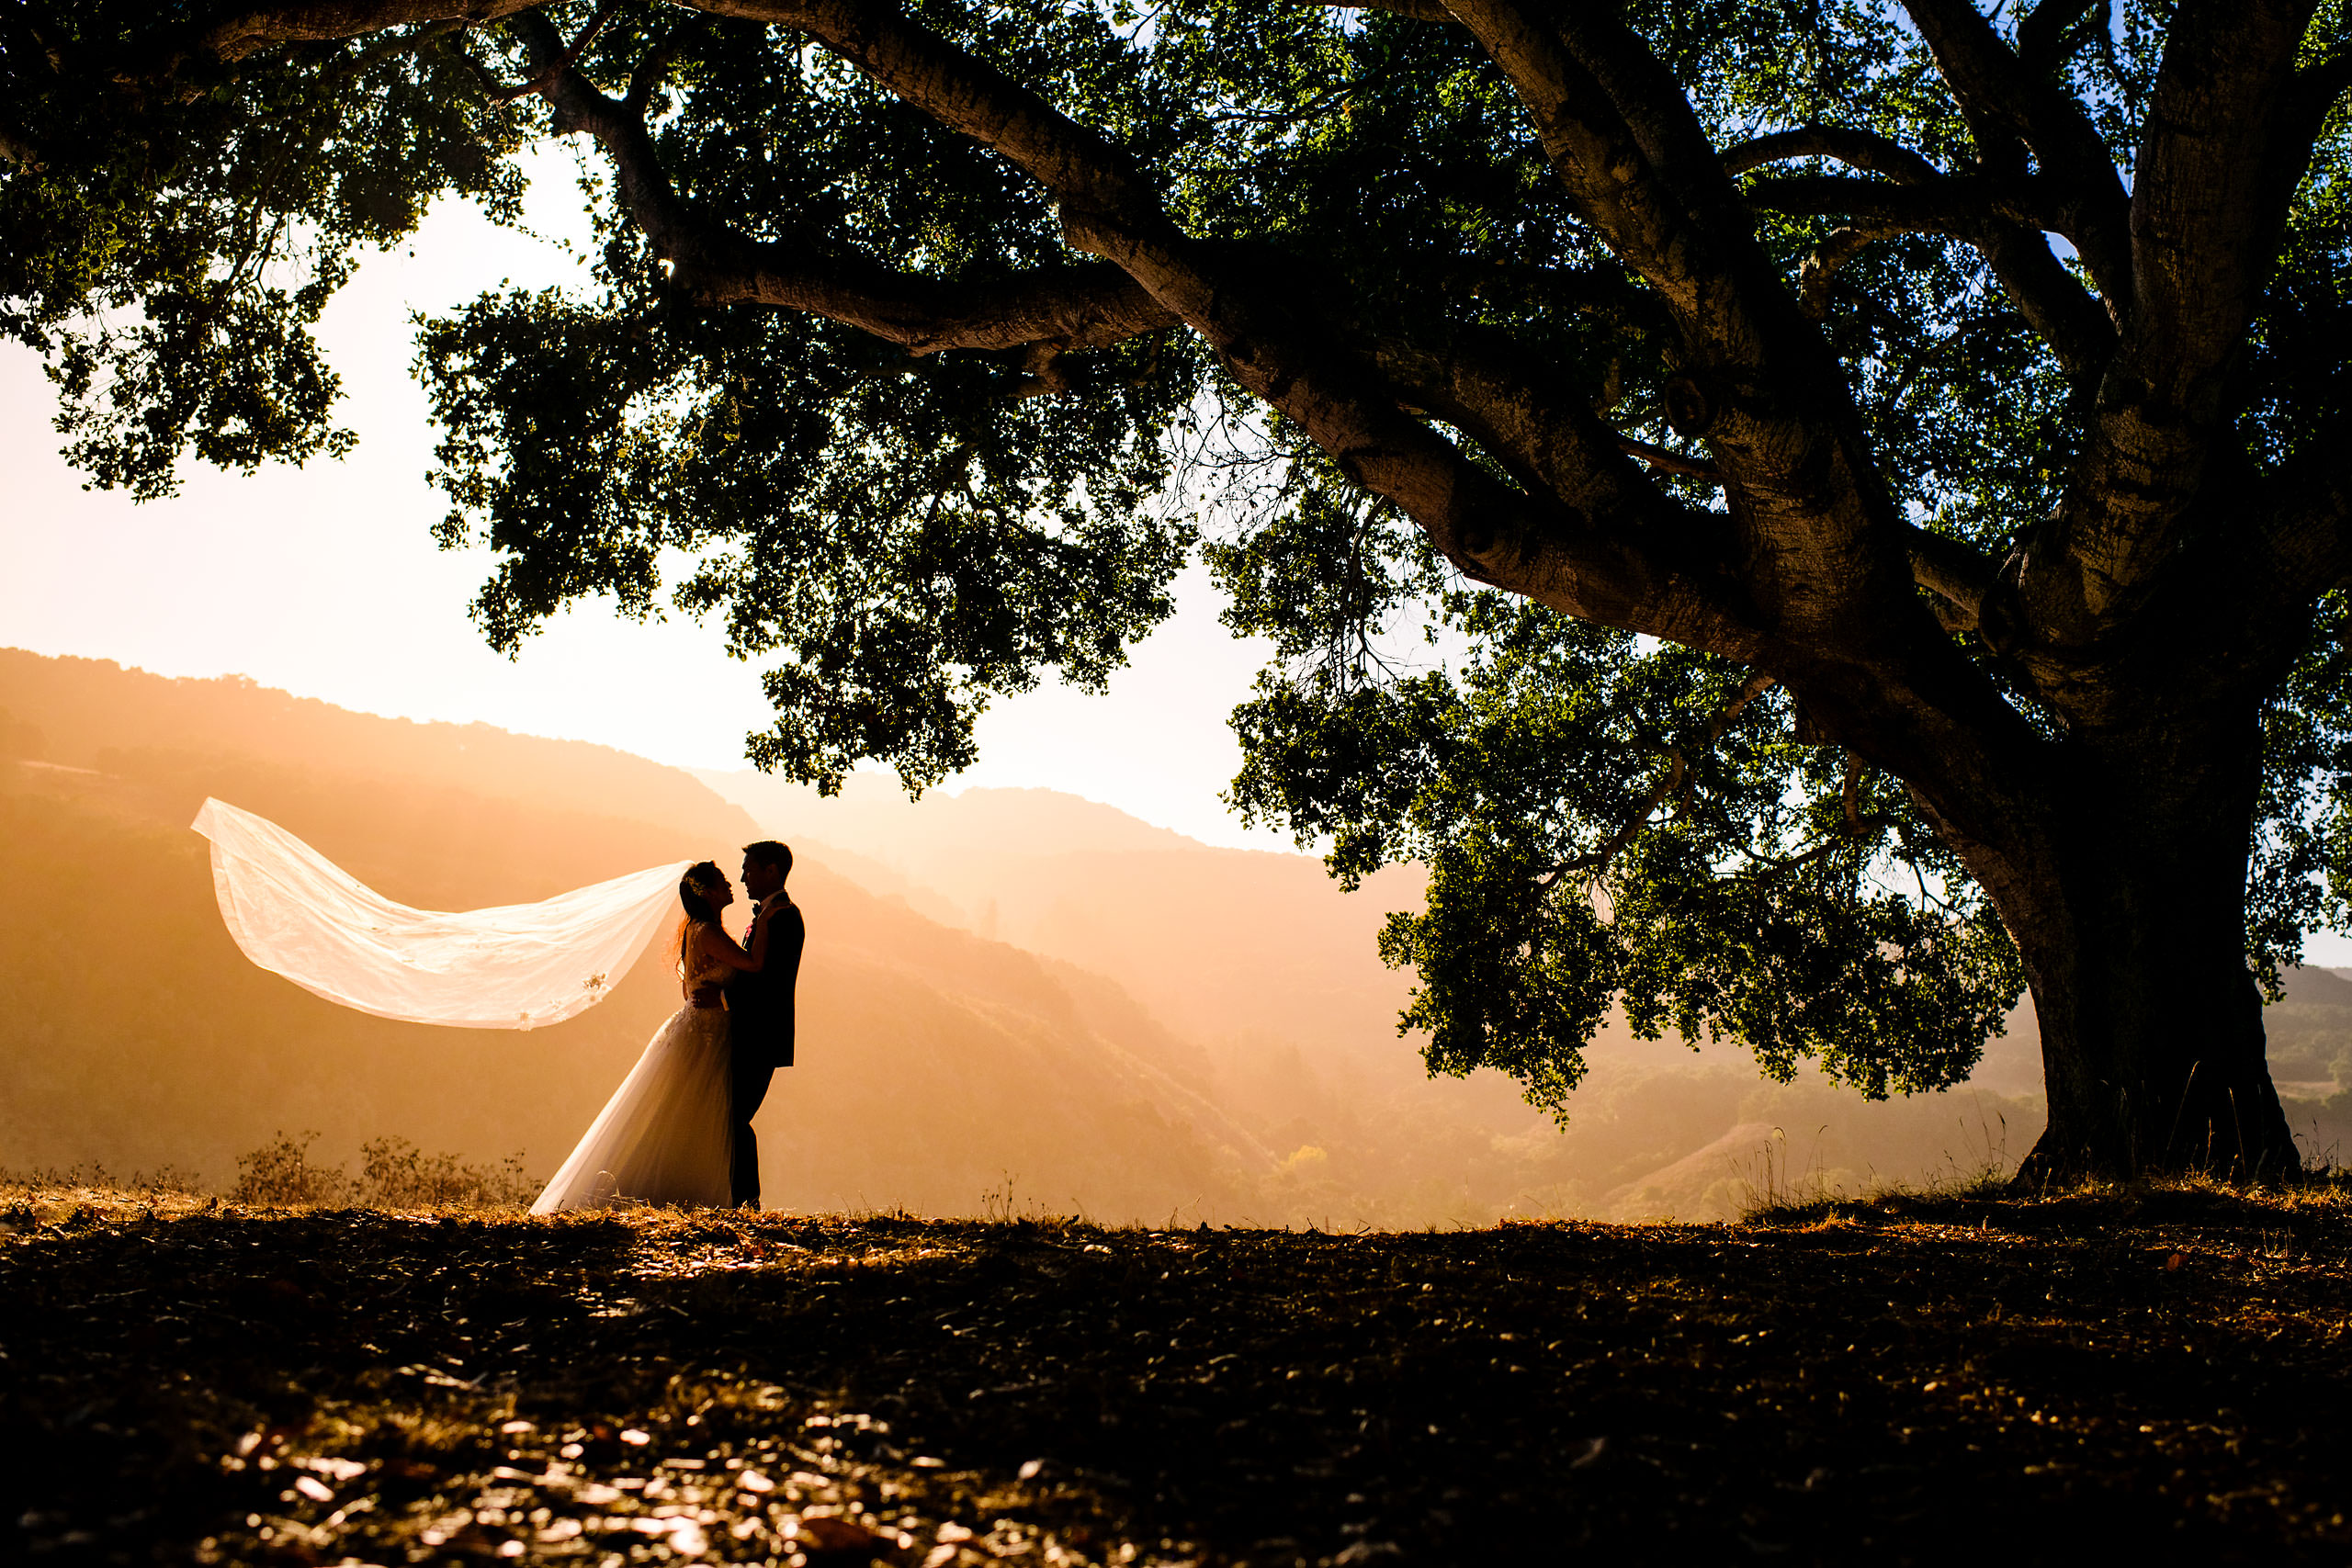 The yoga platform portrait by Carmel Valley Ranch Wedding Photographer Sean LeBlanc